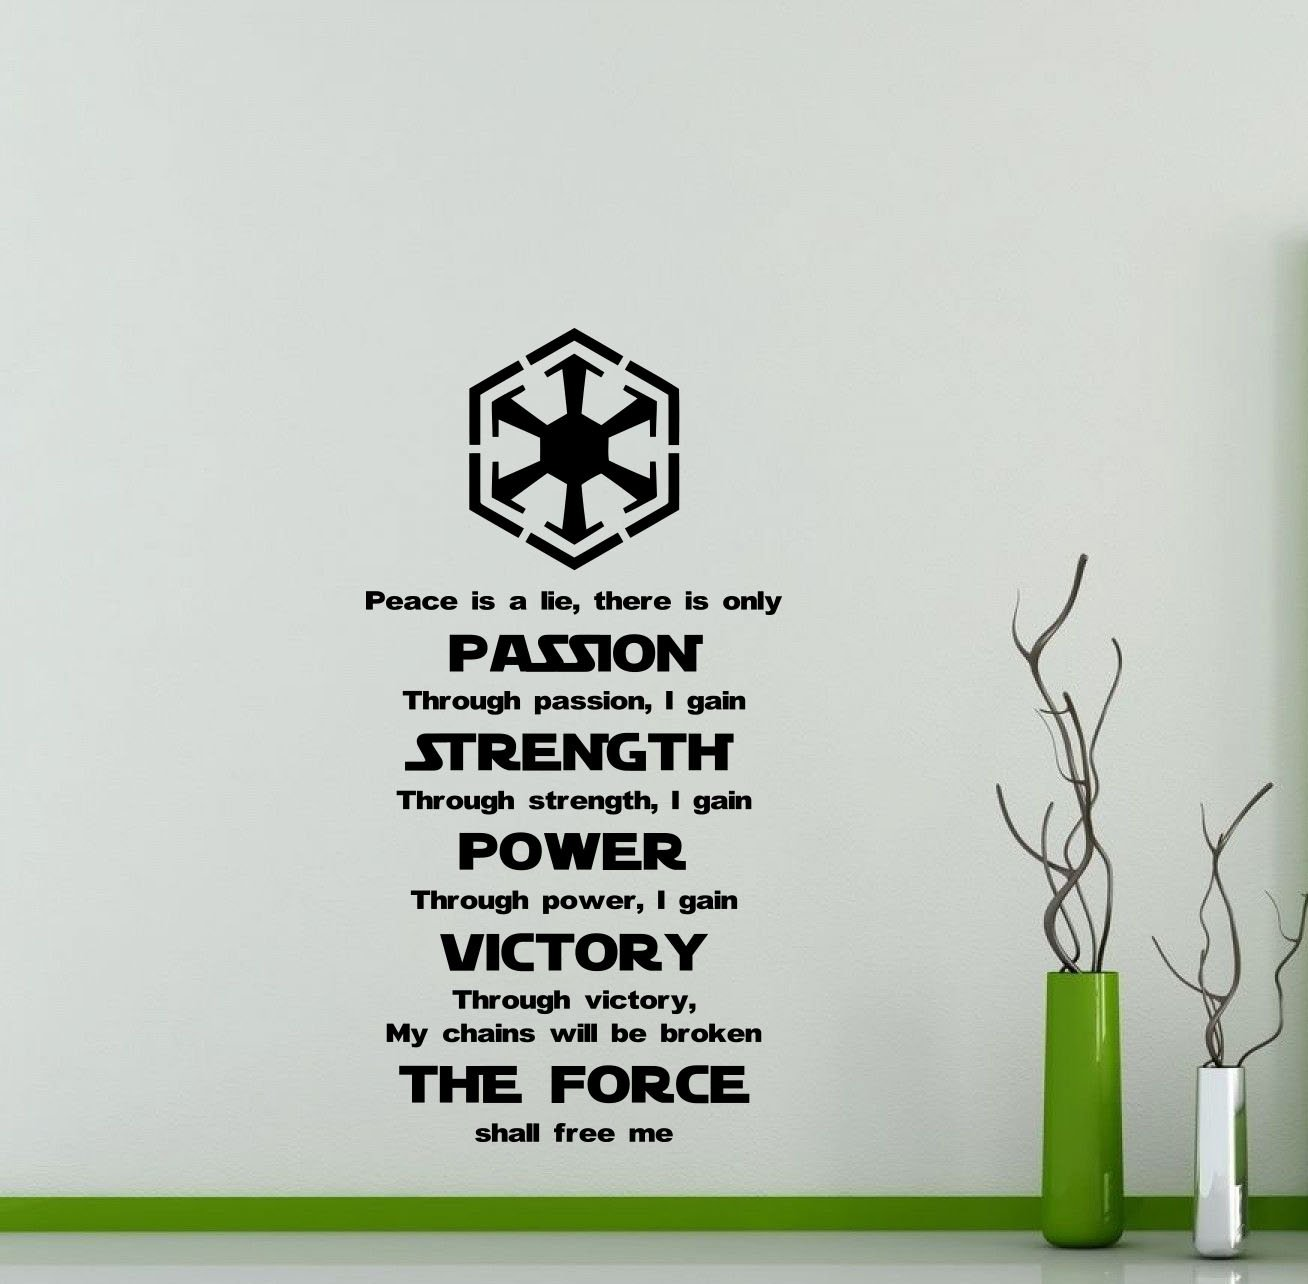 Star Wars Wall Vinyl Decal Sith Code Passion Strength Power Victory The Force Codex Quote Vinyl Sticker Home Teen Kids Room Nursery Art Decor Lettering Vinyl Mural (48sw)